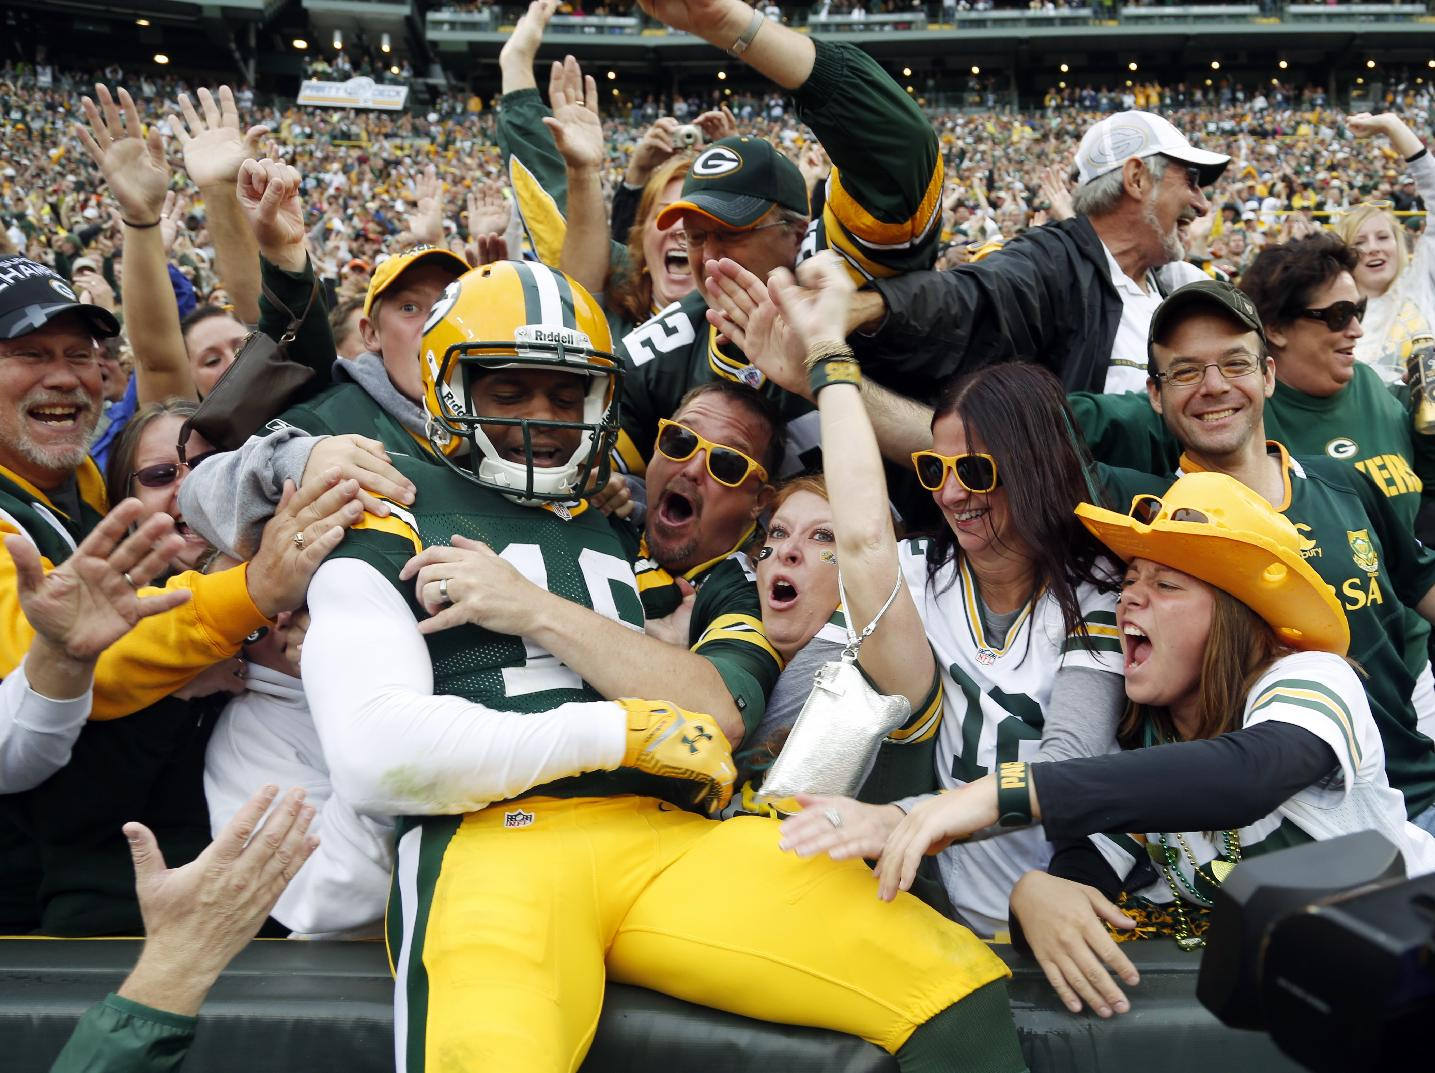 Green Bay Packers' Randall Cobb celebrates with fans after catching a touchdown pass during the first half of an NFL football game against the Washington Redskins Sunday, Sept. 15, 2013, in Green Bay, Wis